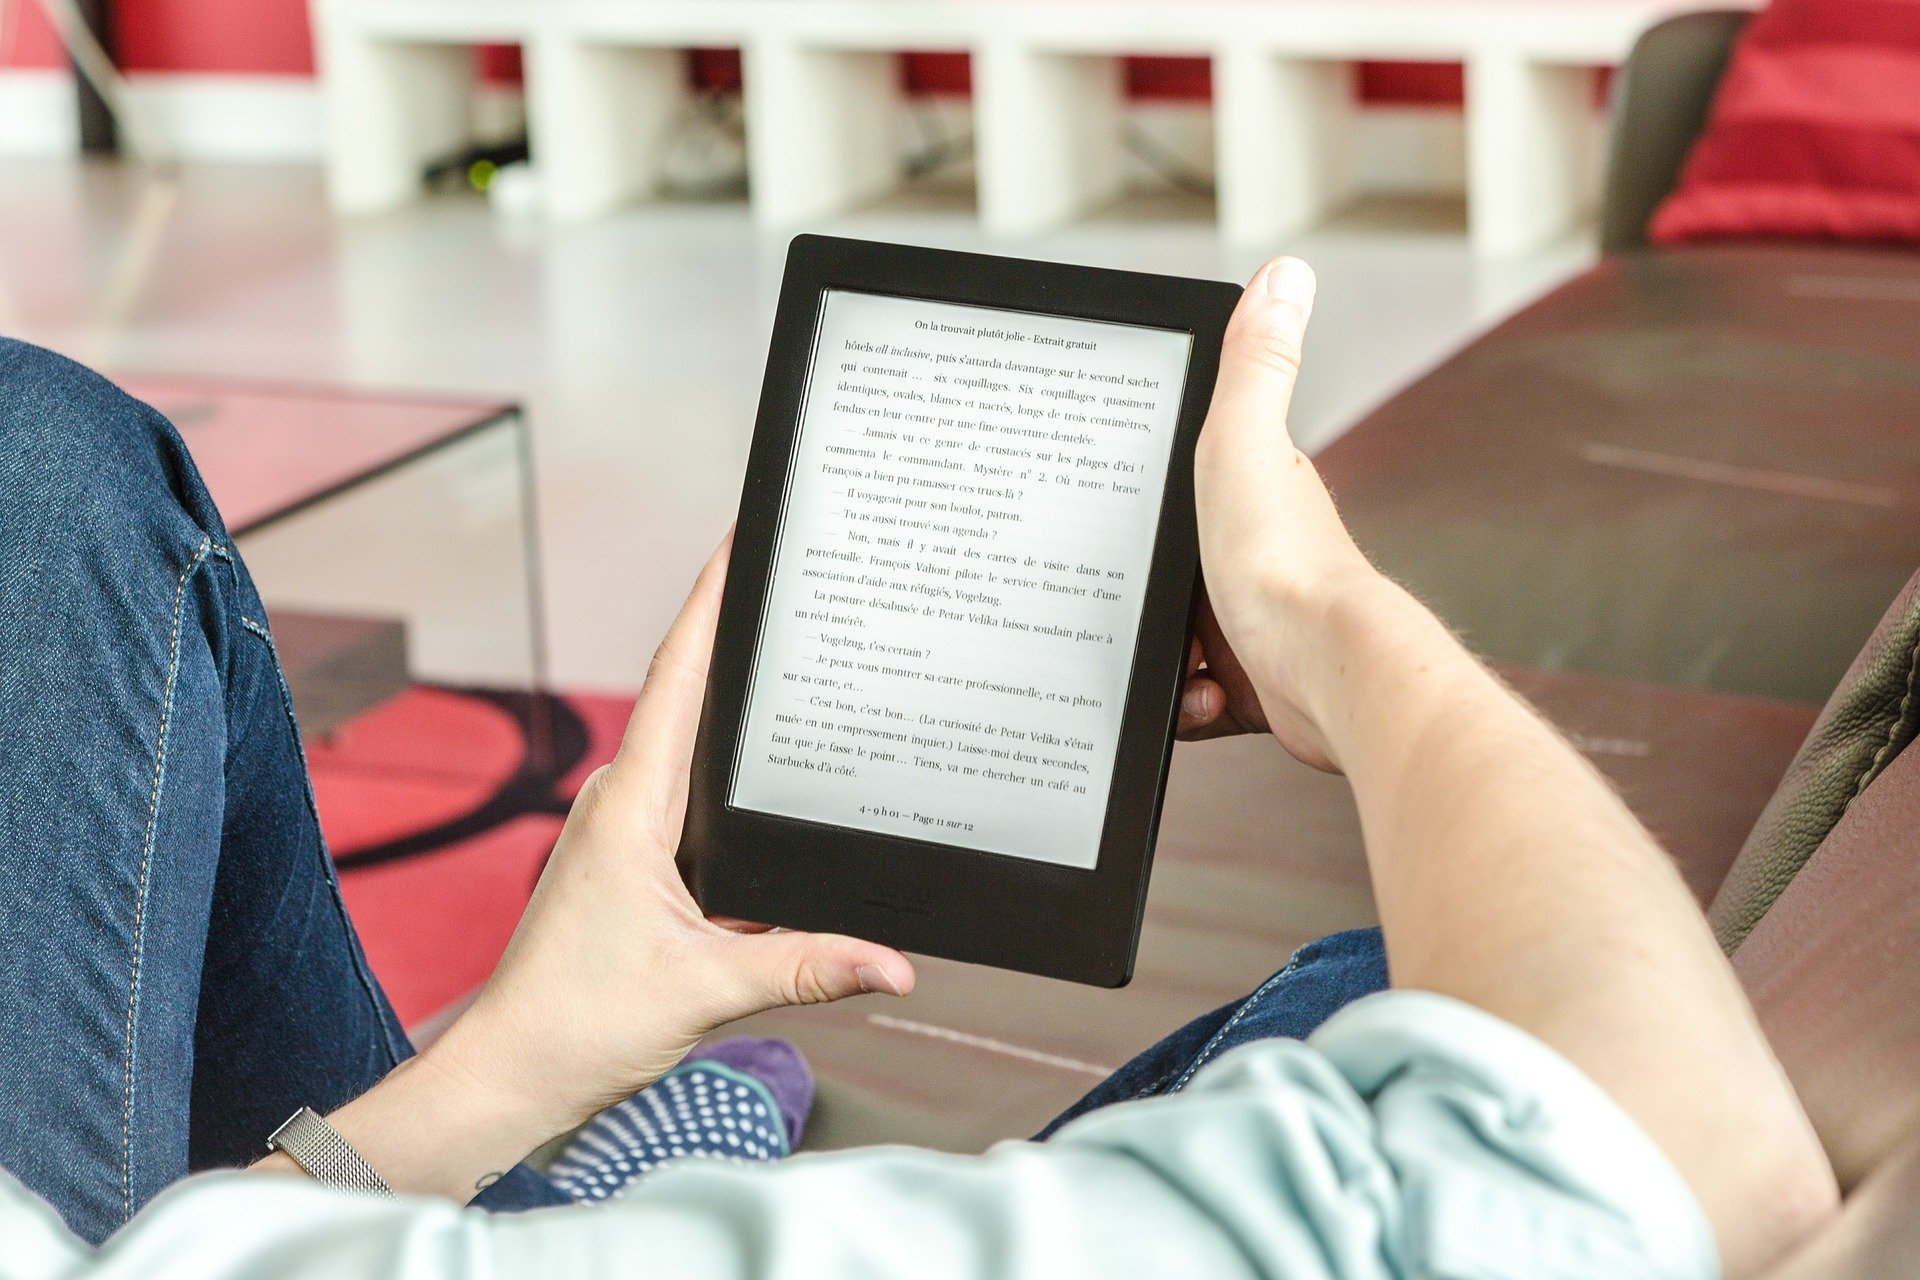 What Are The Benefits Of Reading From PDF?